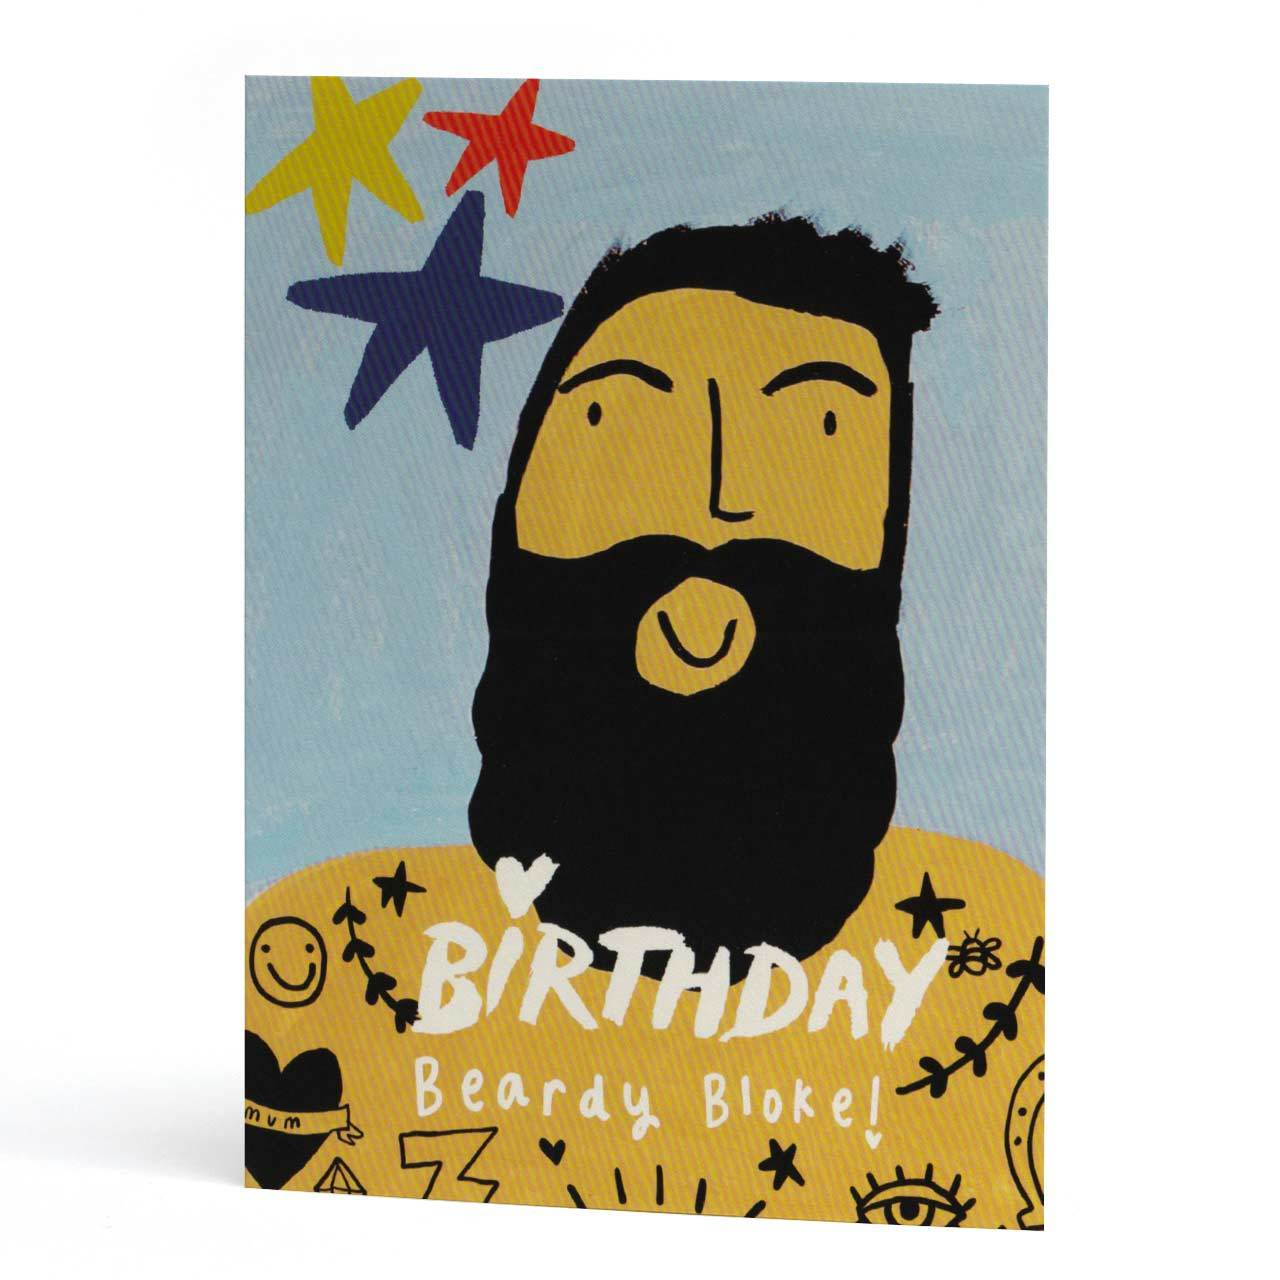 Birthday Stars Beardy Bloke Greeting Card